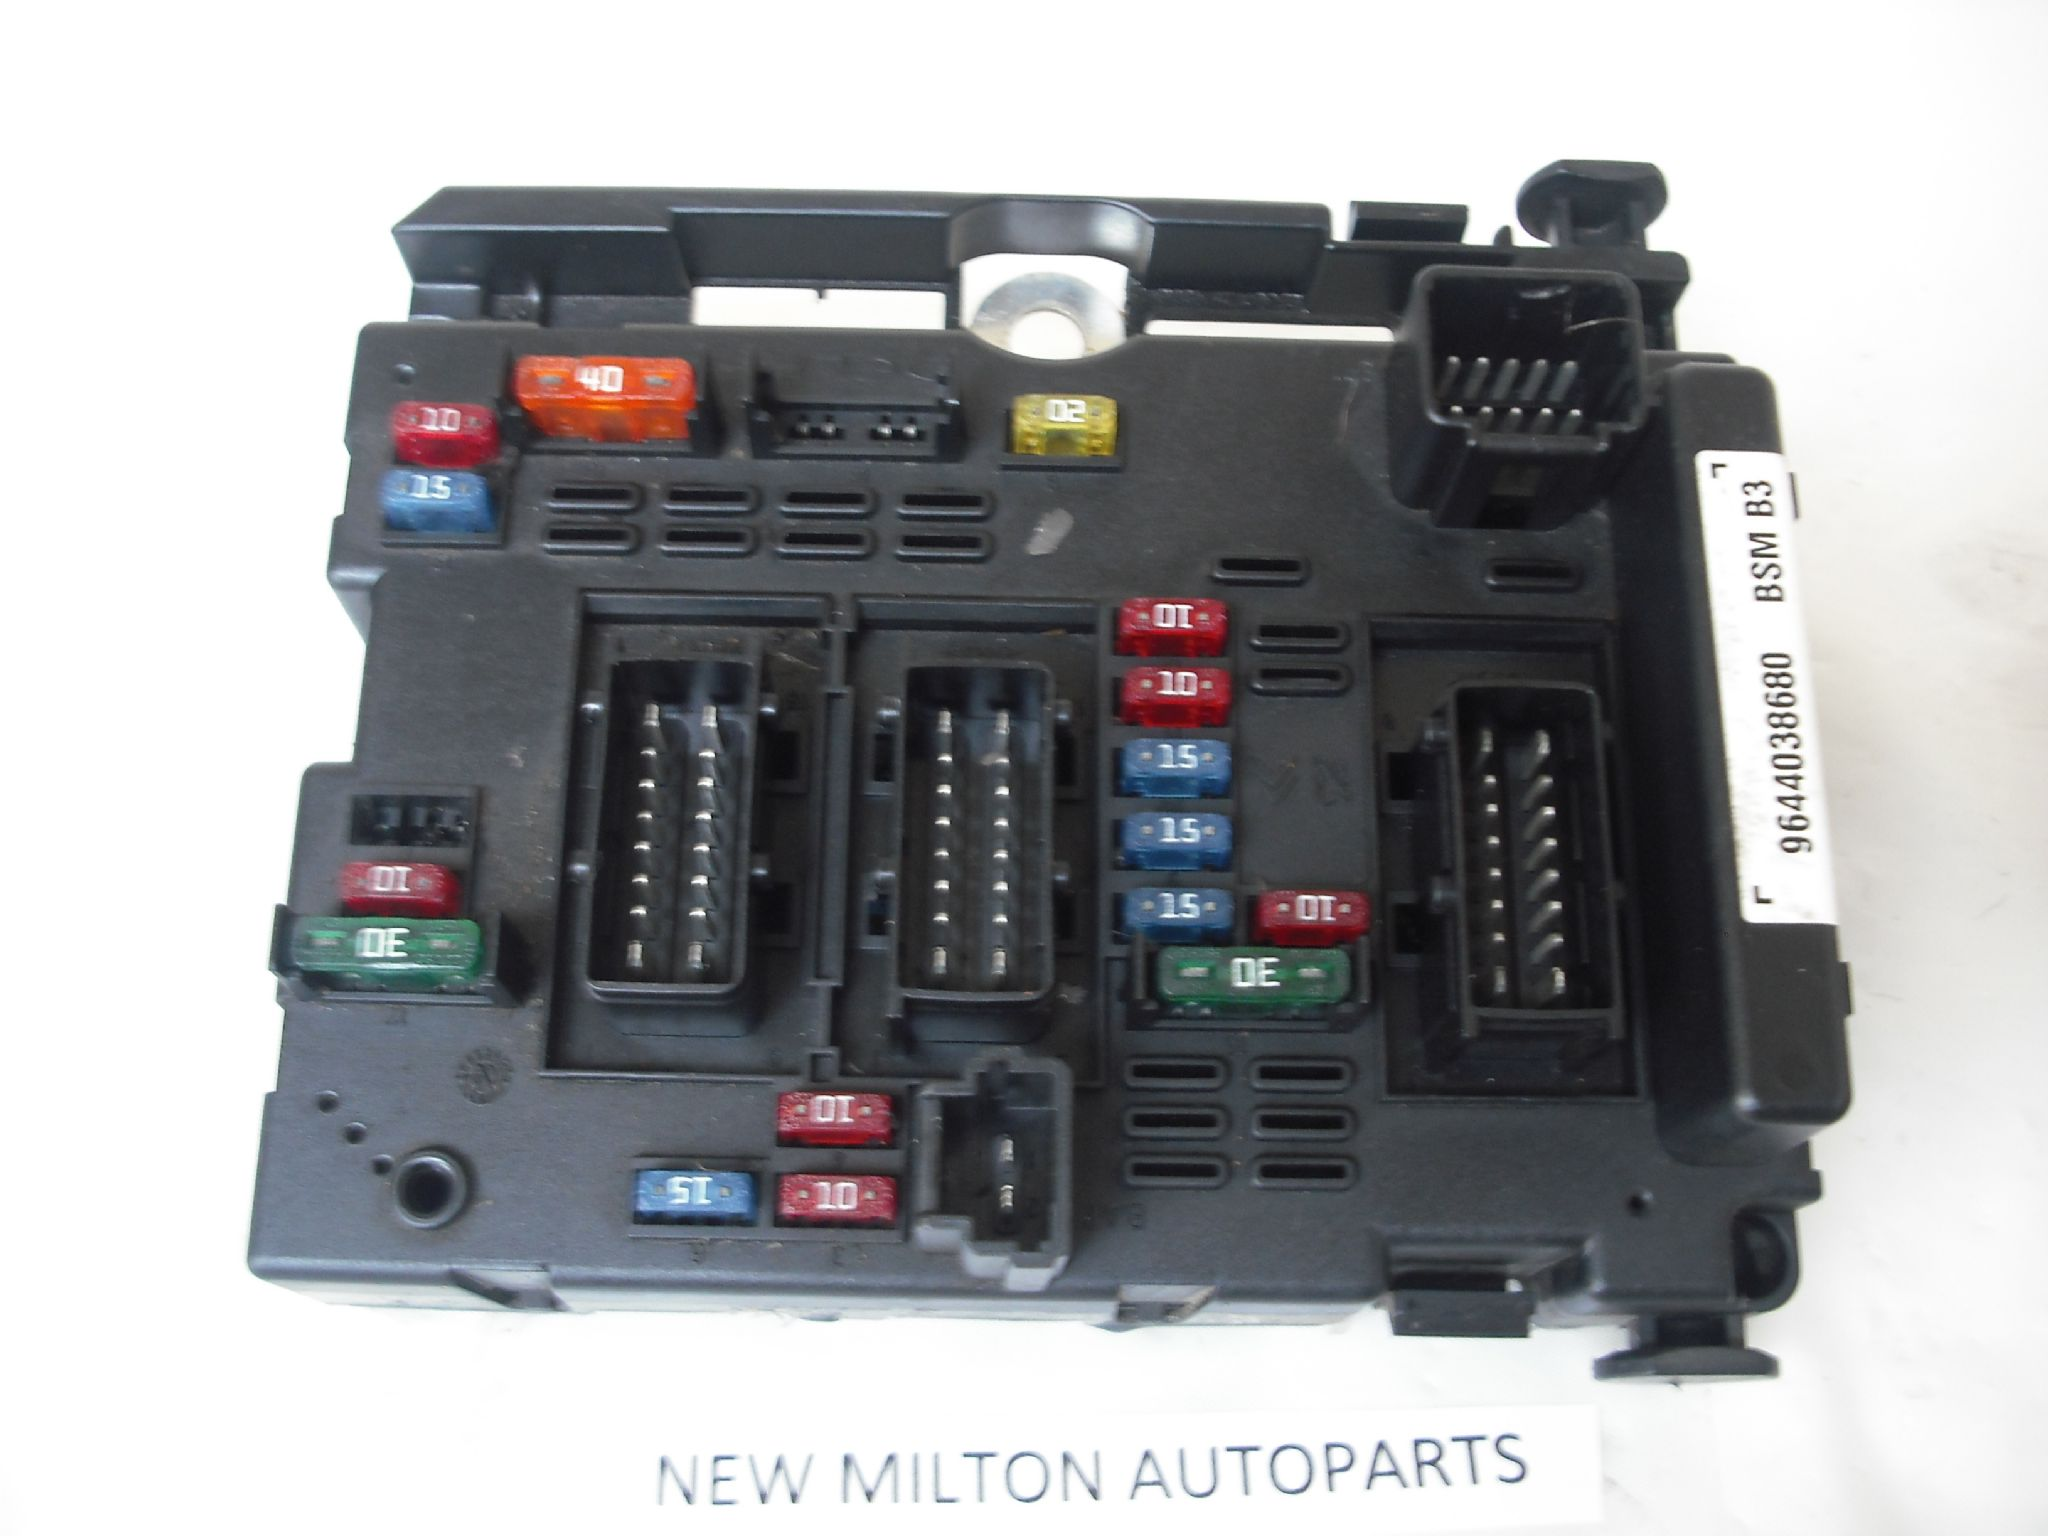 peugeot 307 partner citroen berlingo fuse box controller 9644038680 bsm b3 ........................sorry out of stock 5843 p peugeot 307 partner citroen berlingo fuse box controller citroen berlingo 2003 fuse box at mifinder.co